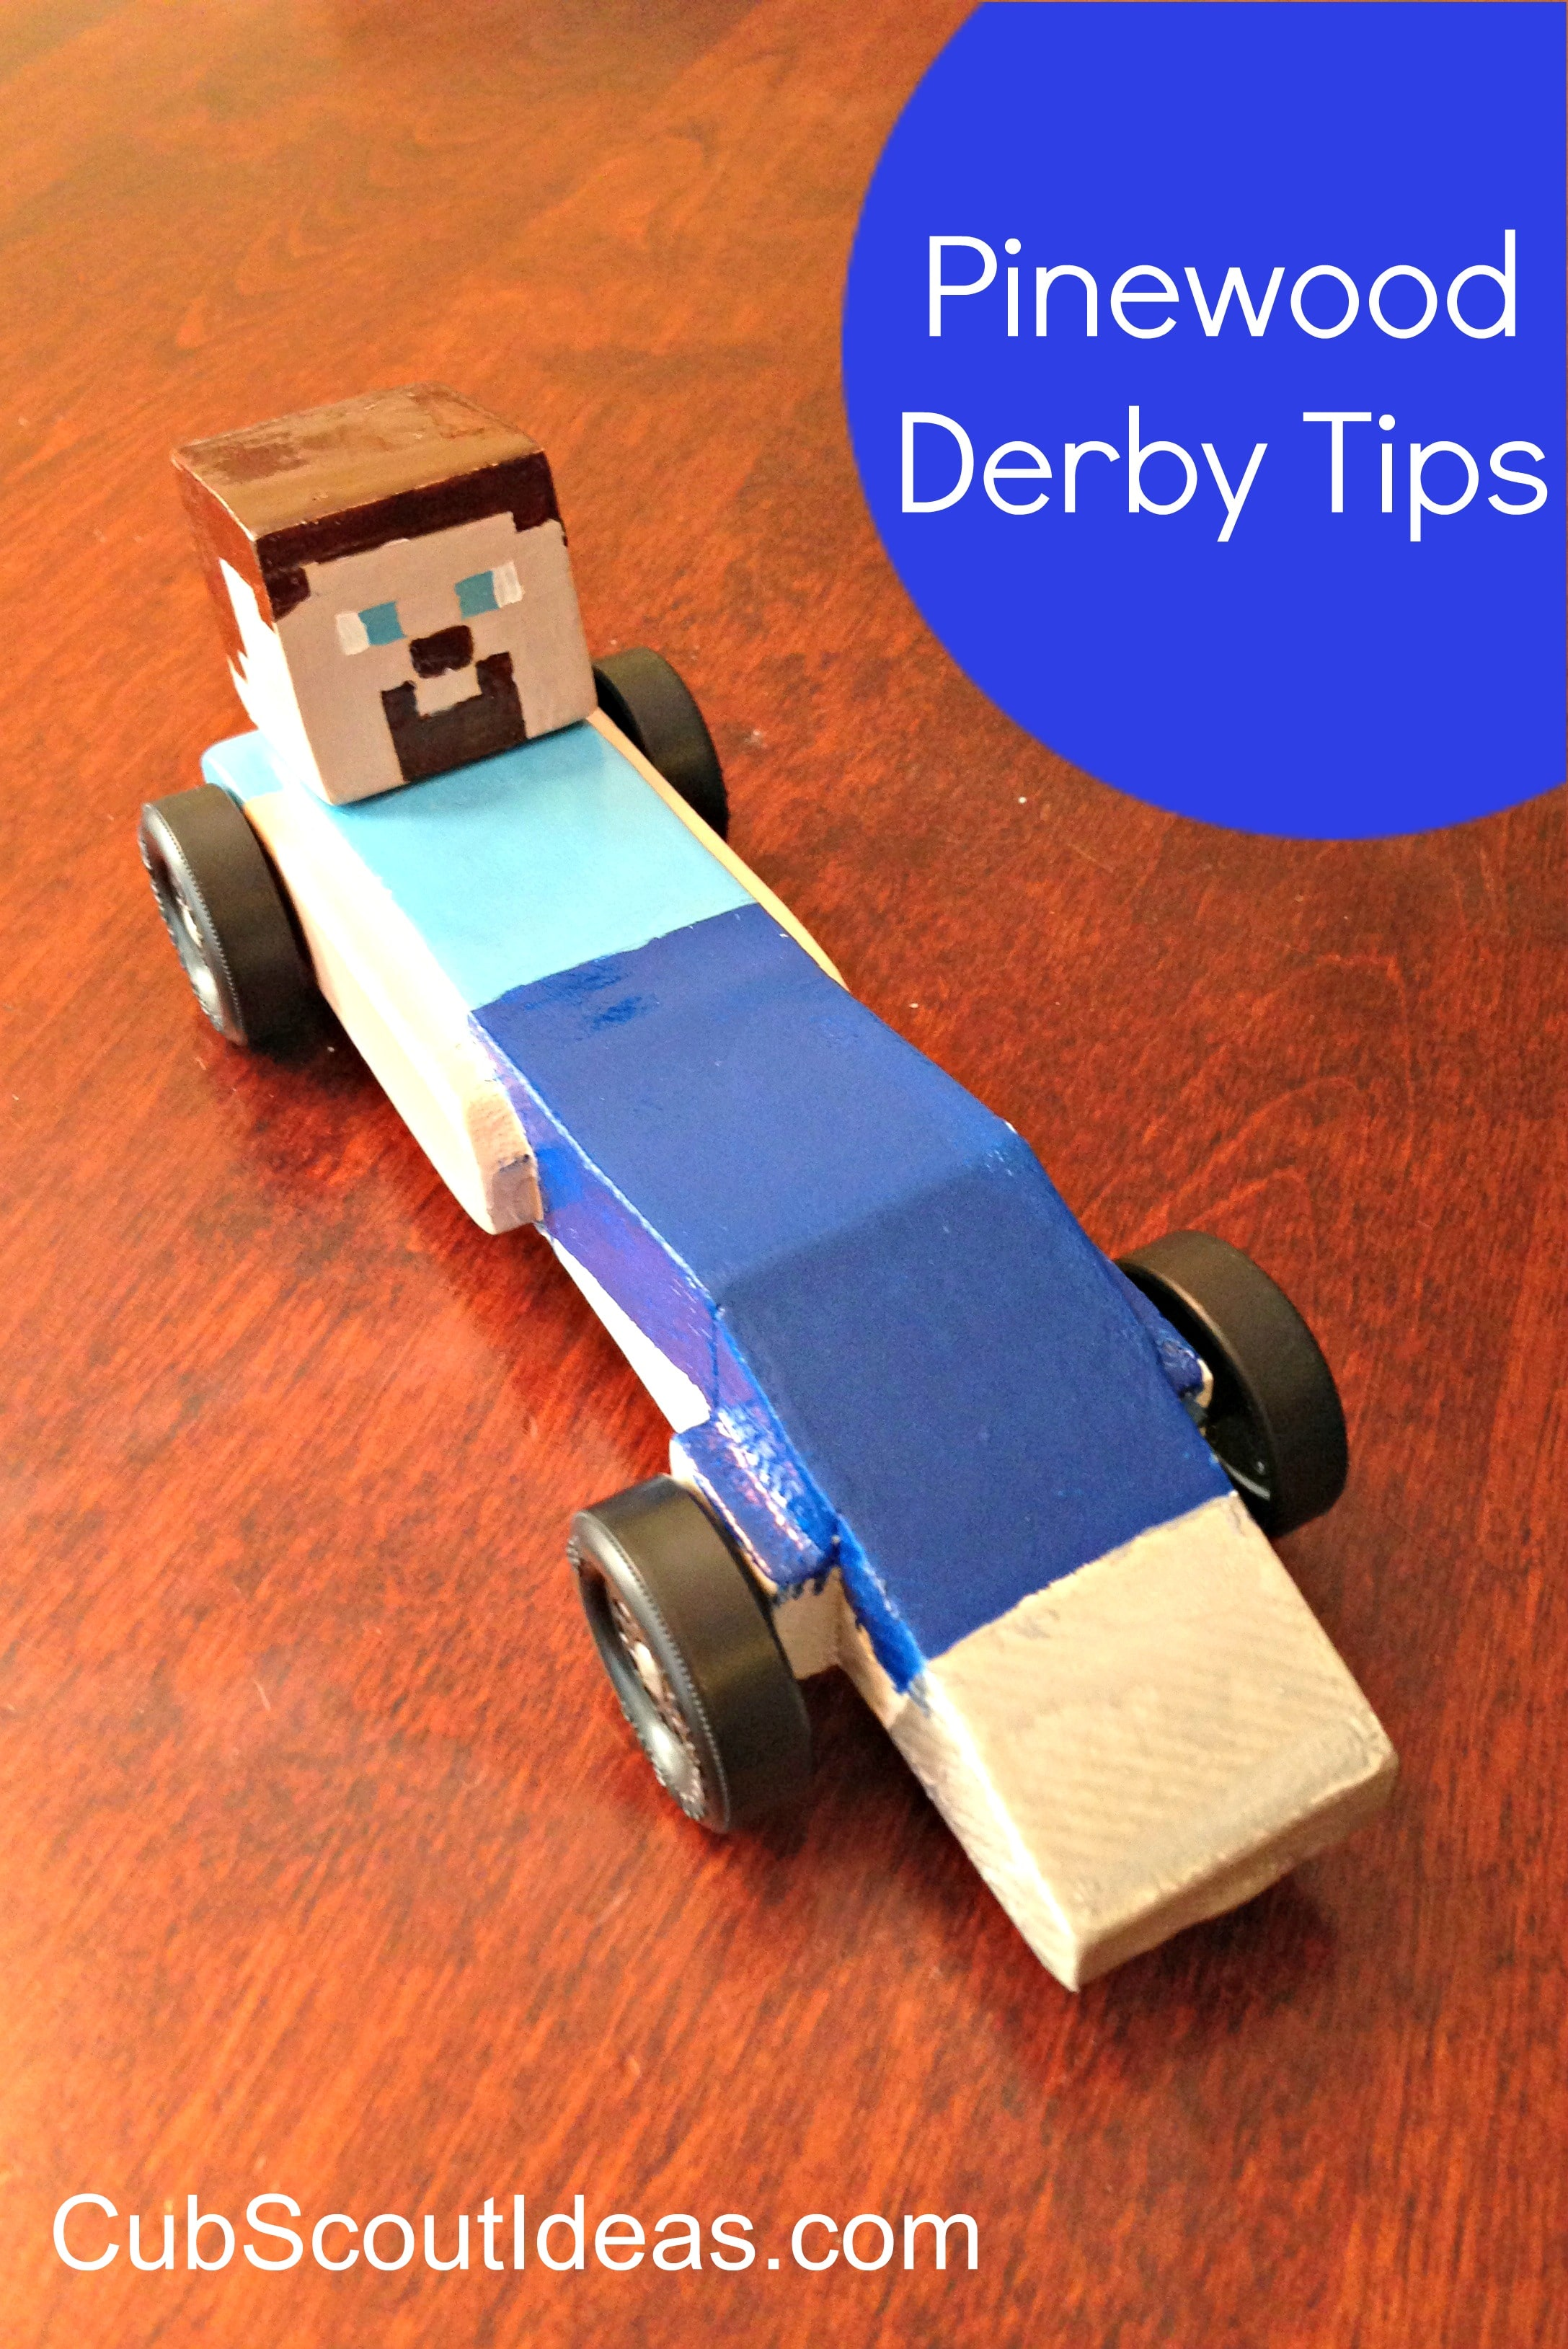 Pinewood derby resources cub scout ideas for Boy scouts pinewood derby templates